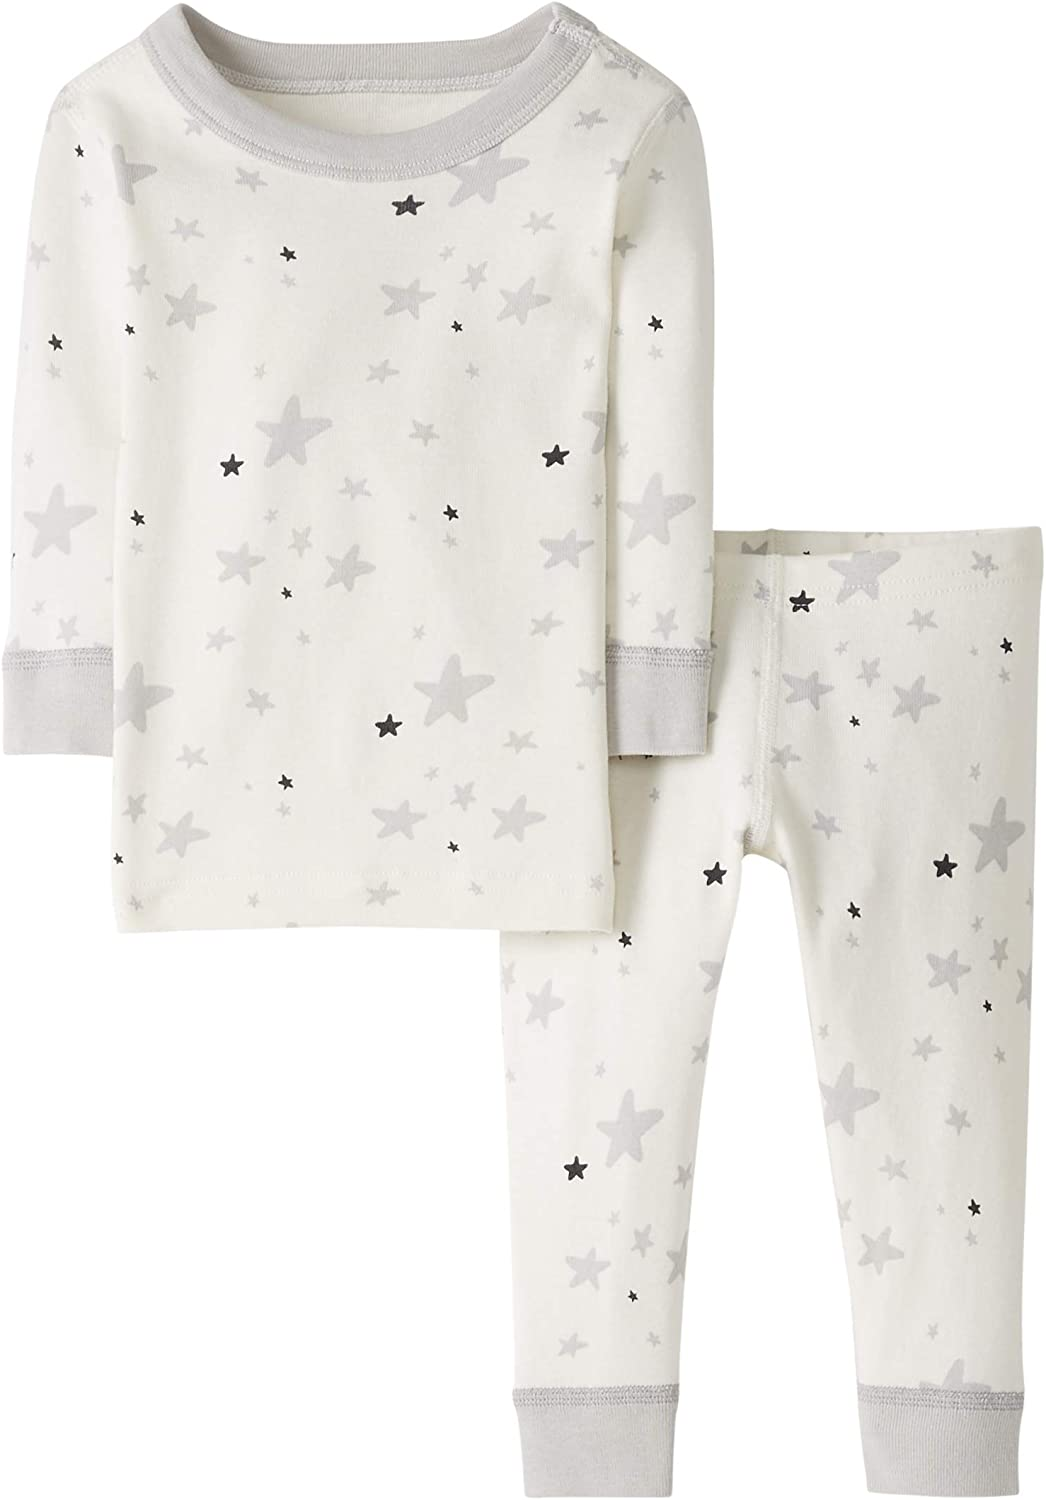 18-24 months Gray Moon and Back by Hanna Andersson Baby//Toddler 2-Piece Organic Cotton Long Sleeve Star Print Pajama Set